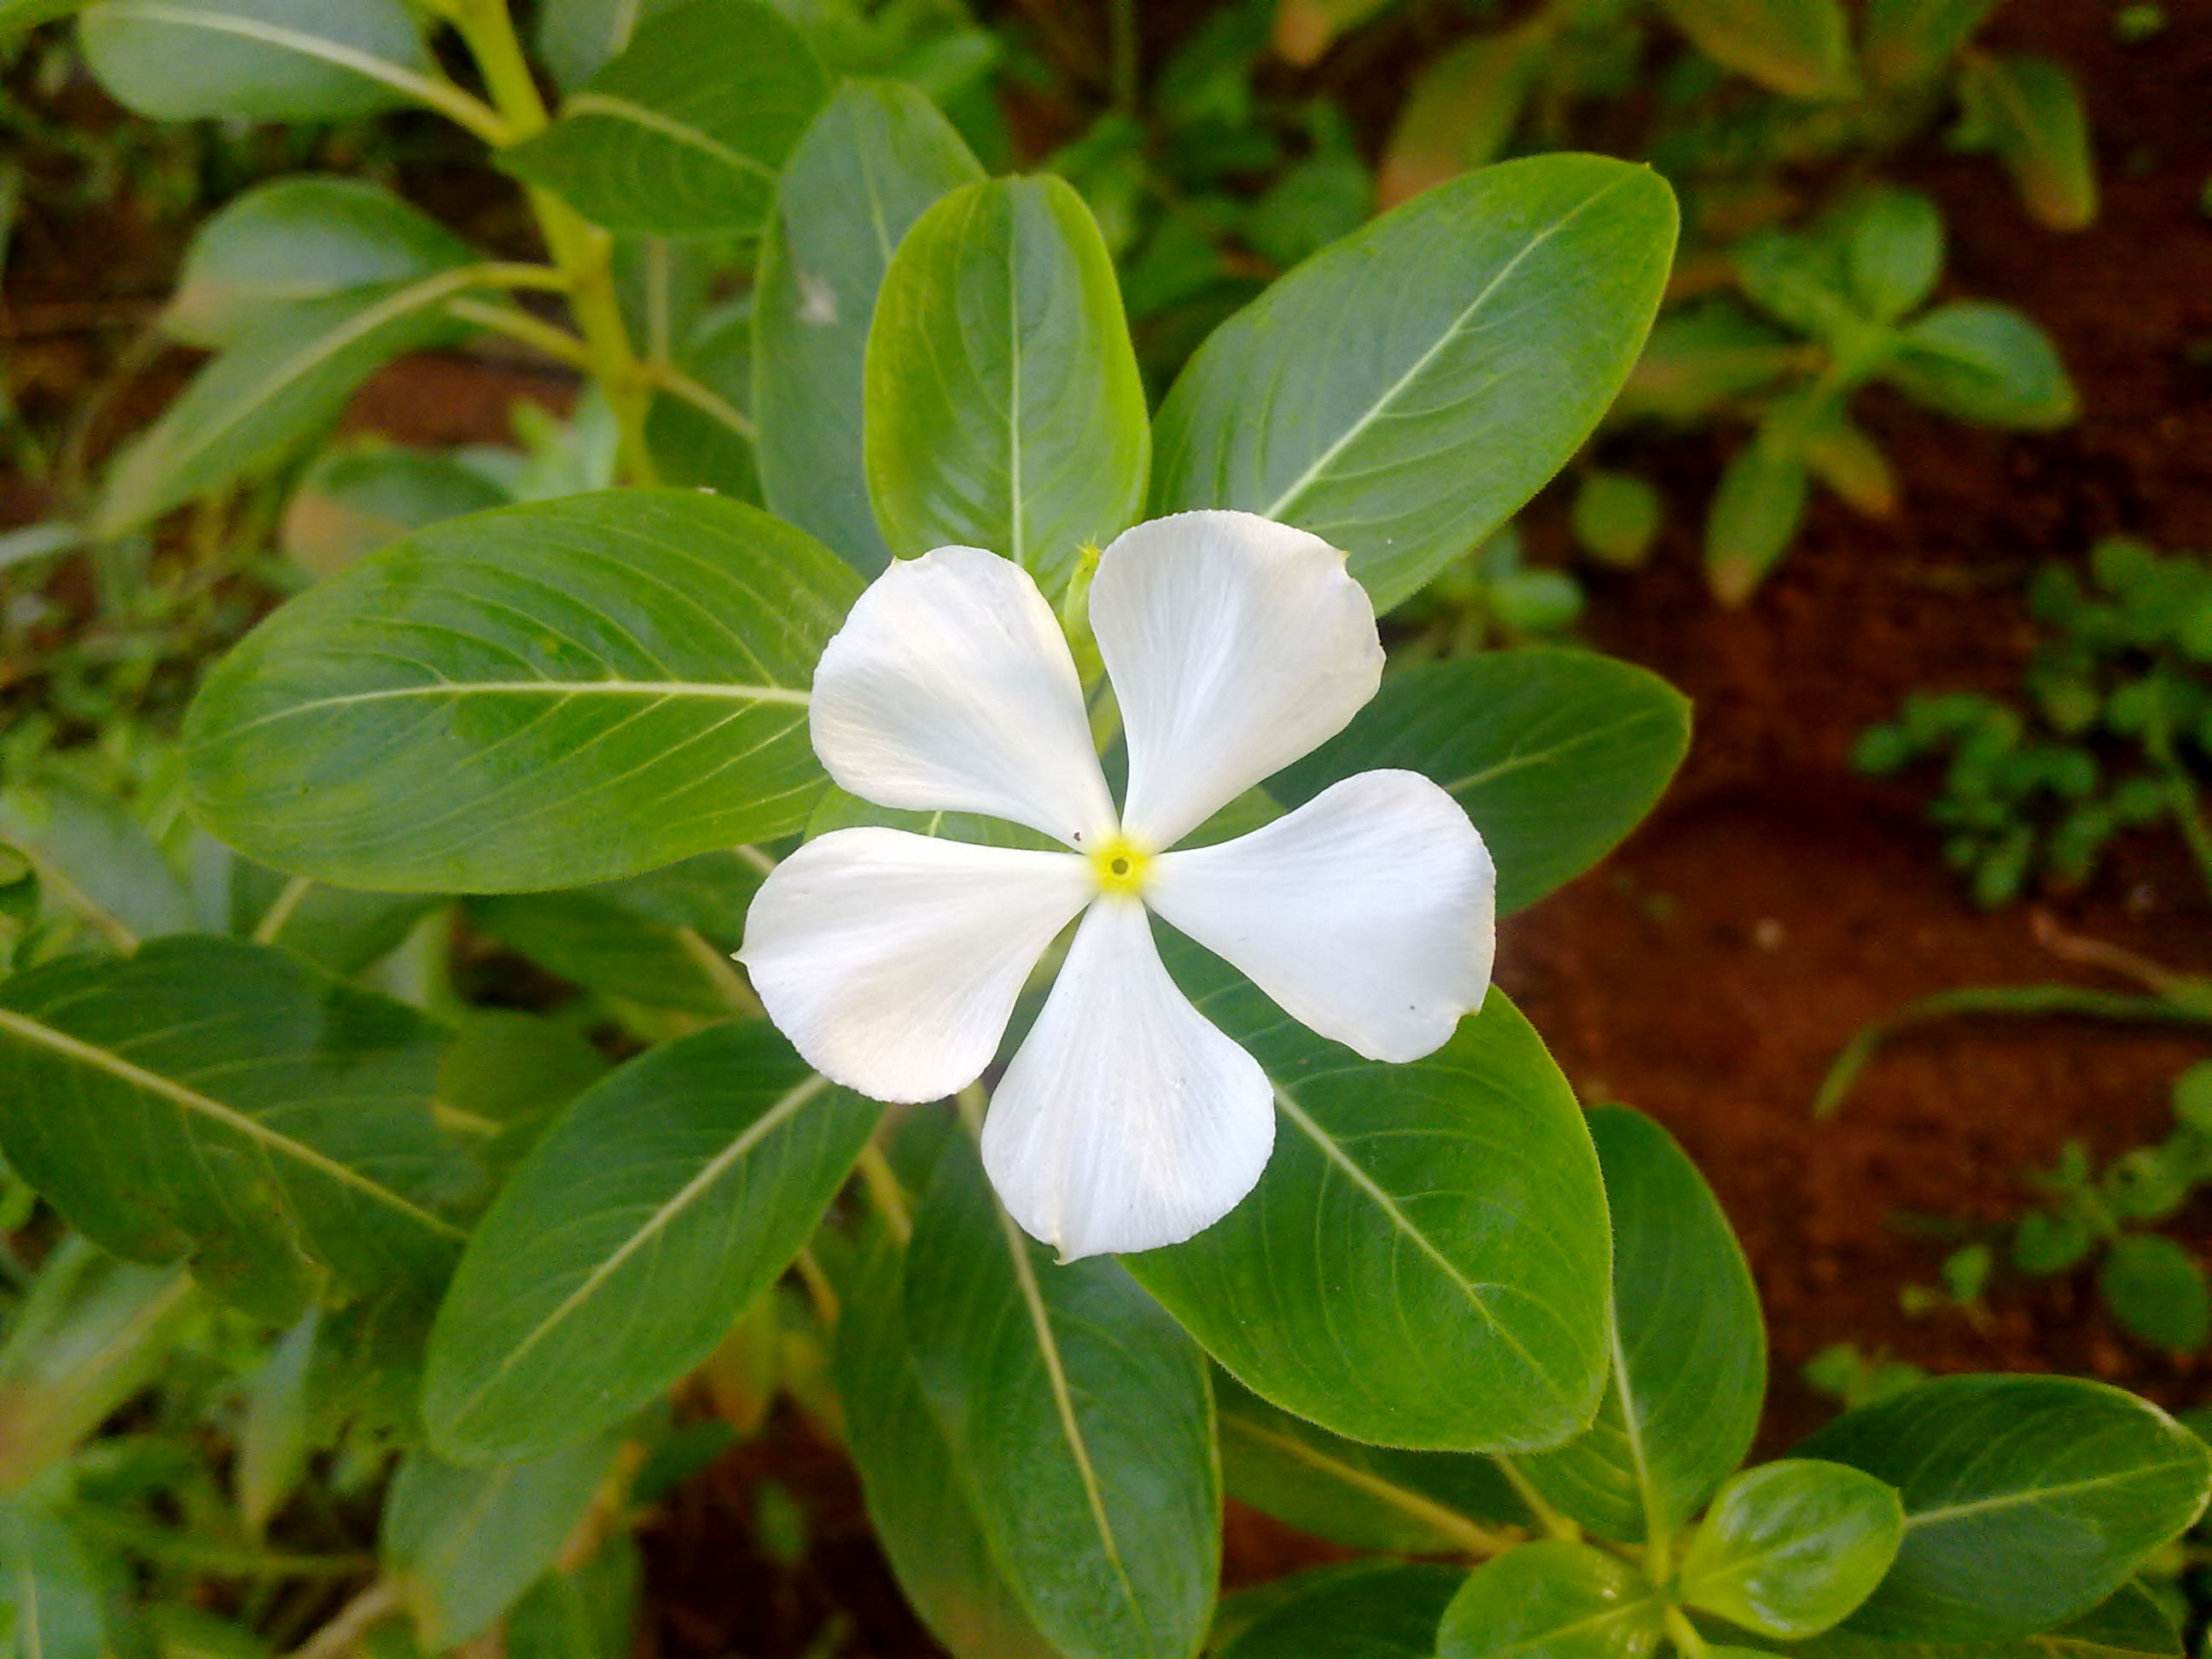 Savam nari flower (catharanthus roseus) photo